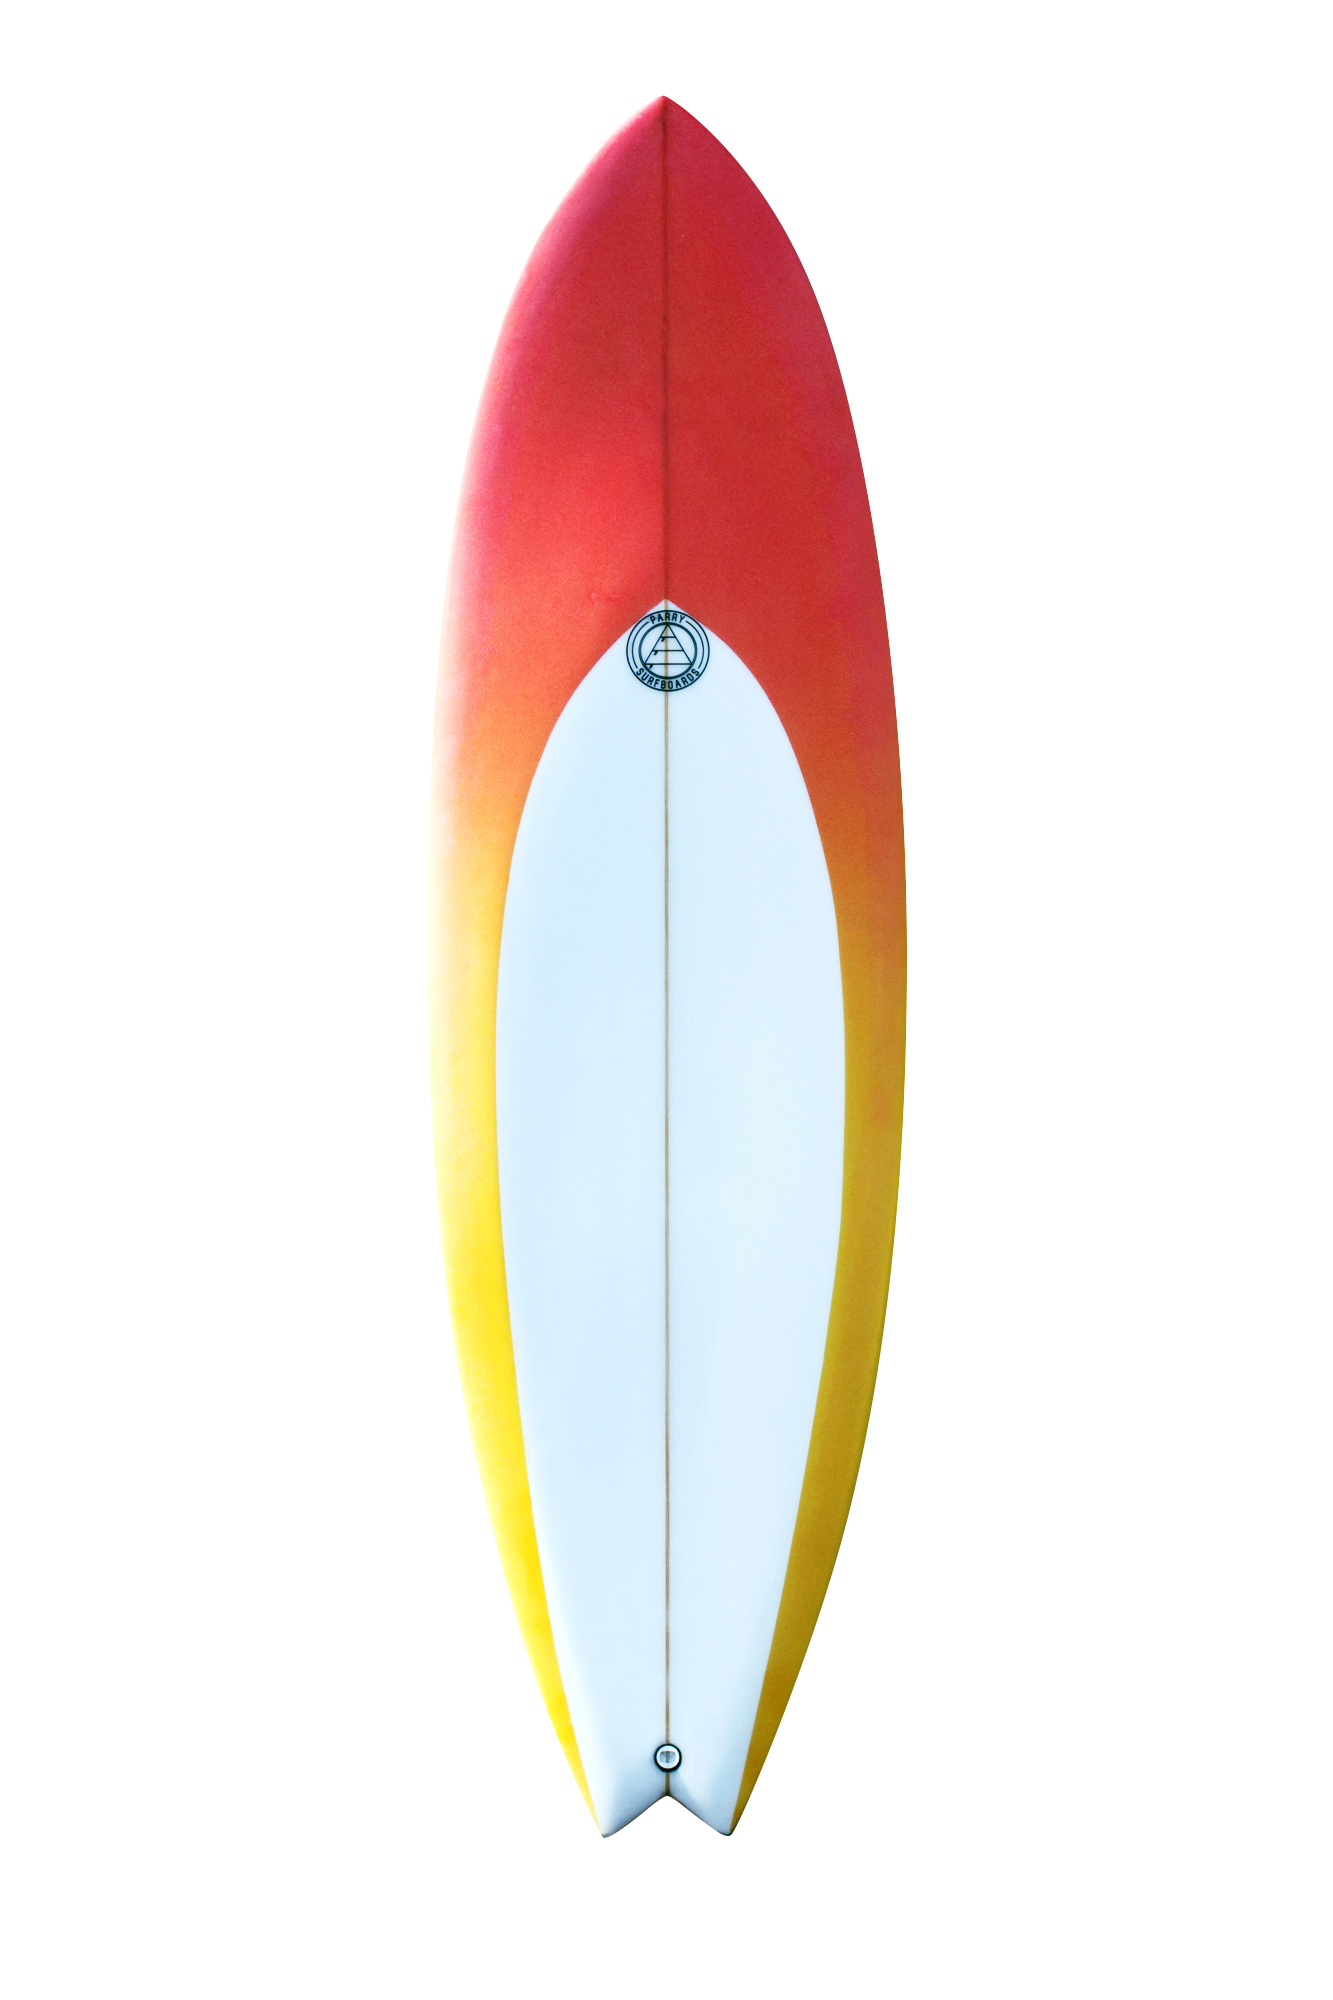 Parry_Surfboards-6.jpg